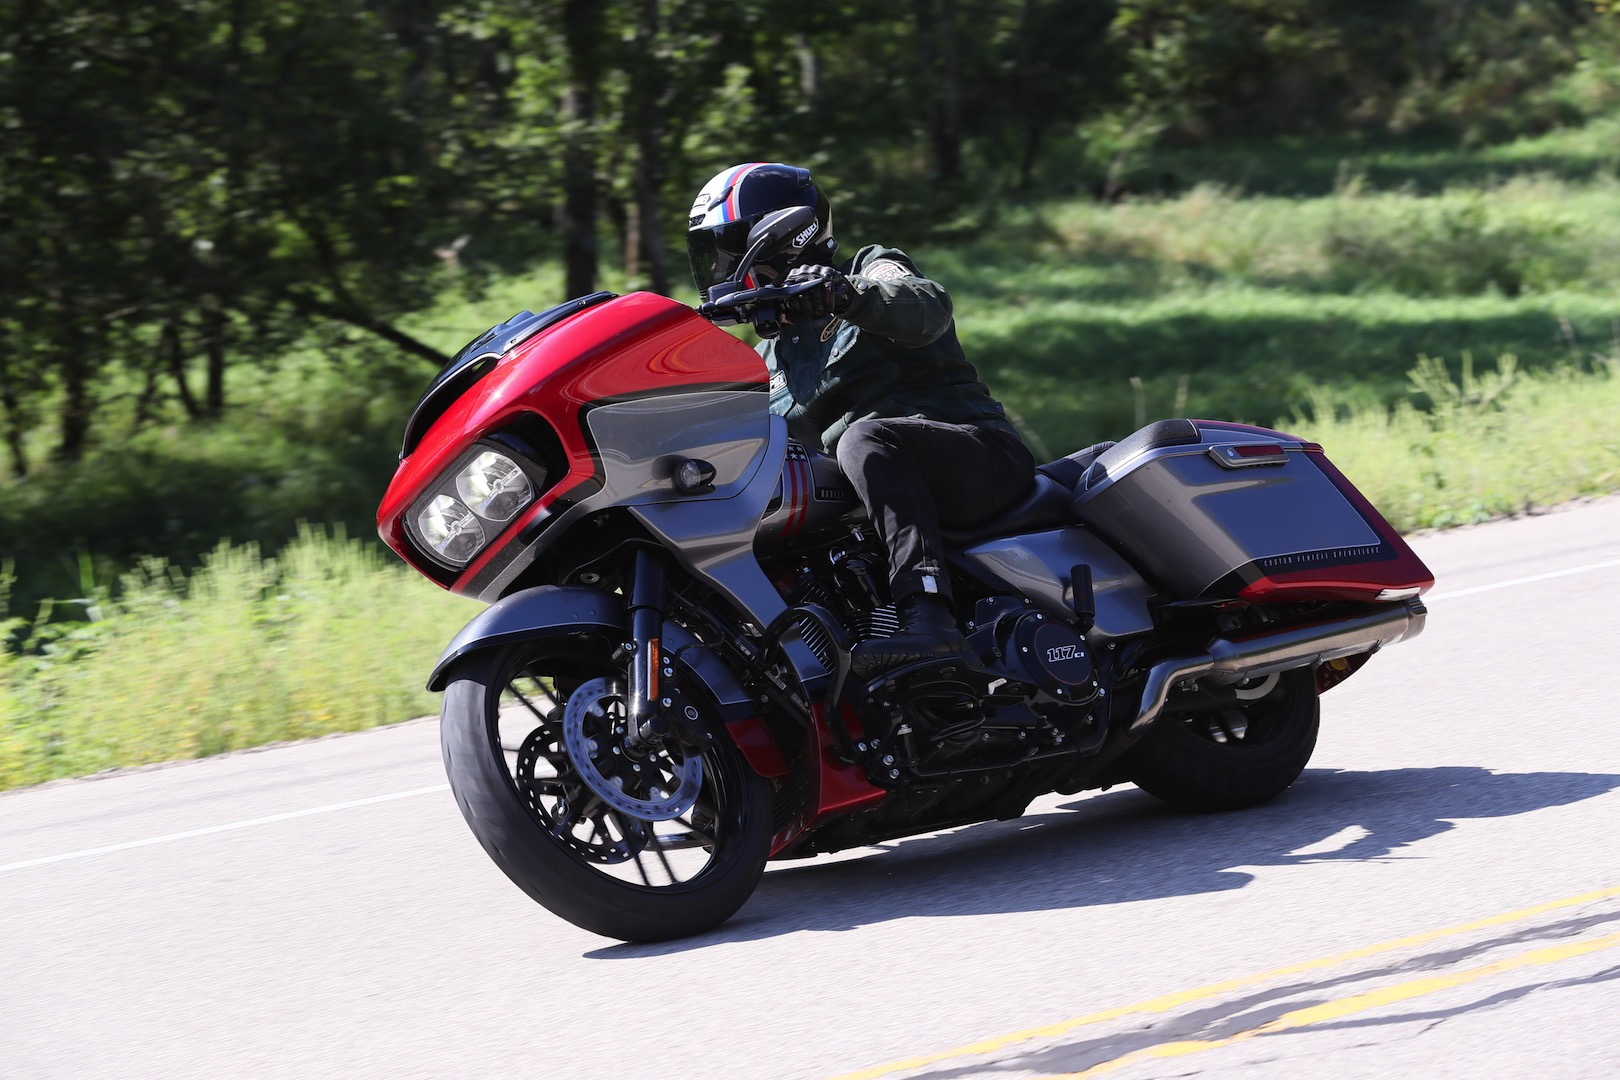 2019 Harley-Davidson CVO Road Glide review